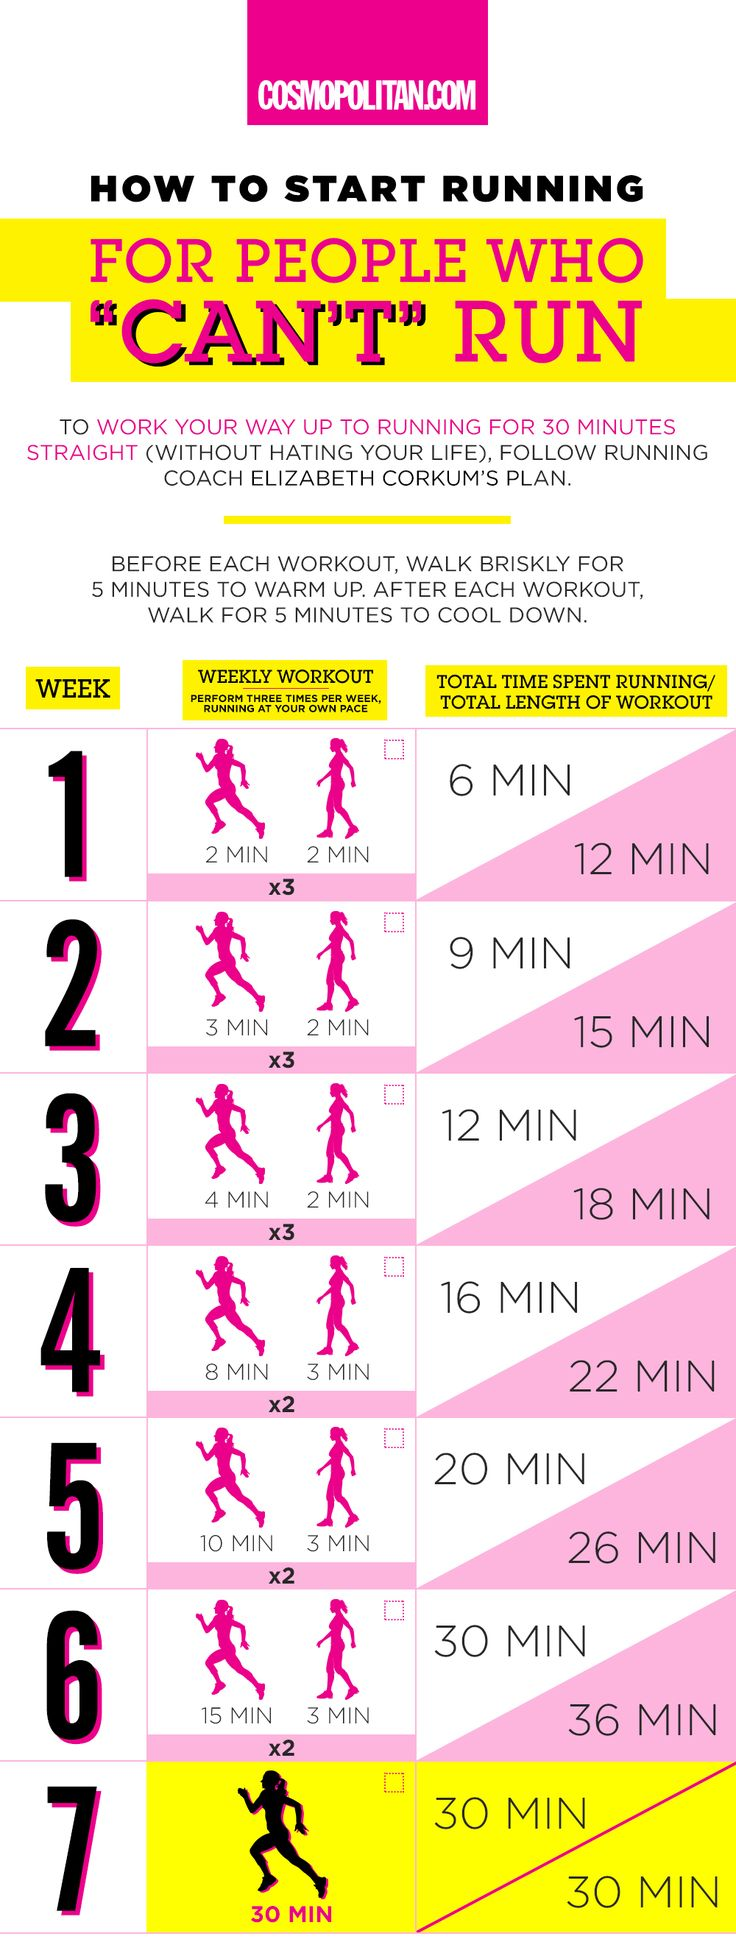 HOW TO START RUNNING: This beginners guide to running is perfect for people who want the benefits of running — strong muscles, a healthy bone density, a superior workout, and much more — but don't know where to start. Use this easy workout and plan from running coach Elizabeth Corkum to achieve your running goals. Click through for more running tips from Corkum, warm up ideas, and the cool down stretches you need. You'll have a runner's body and bragging rights in weeks!